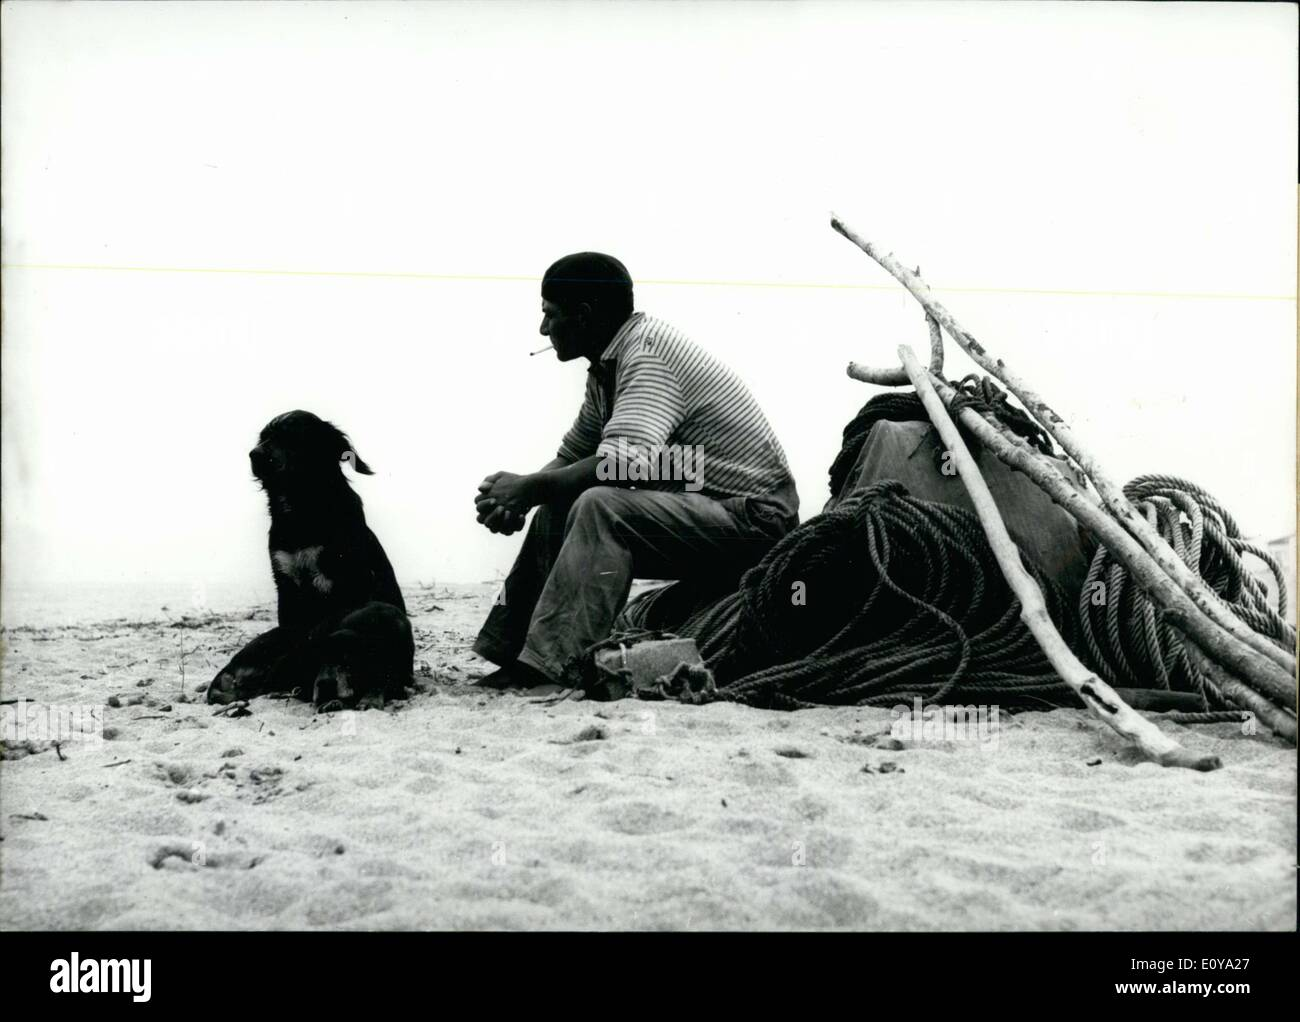 Jun. 19, 1969 - This pair of man and man's best friend are enjoying the morning peace on a beach in the south of France. The area was populated by tourists during this time. - Stock Image